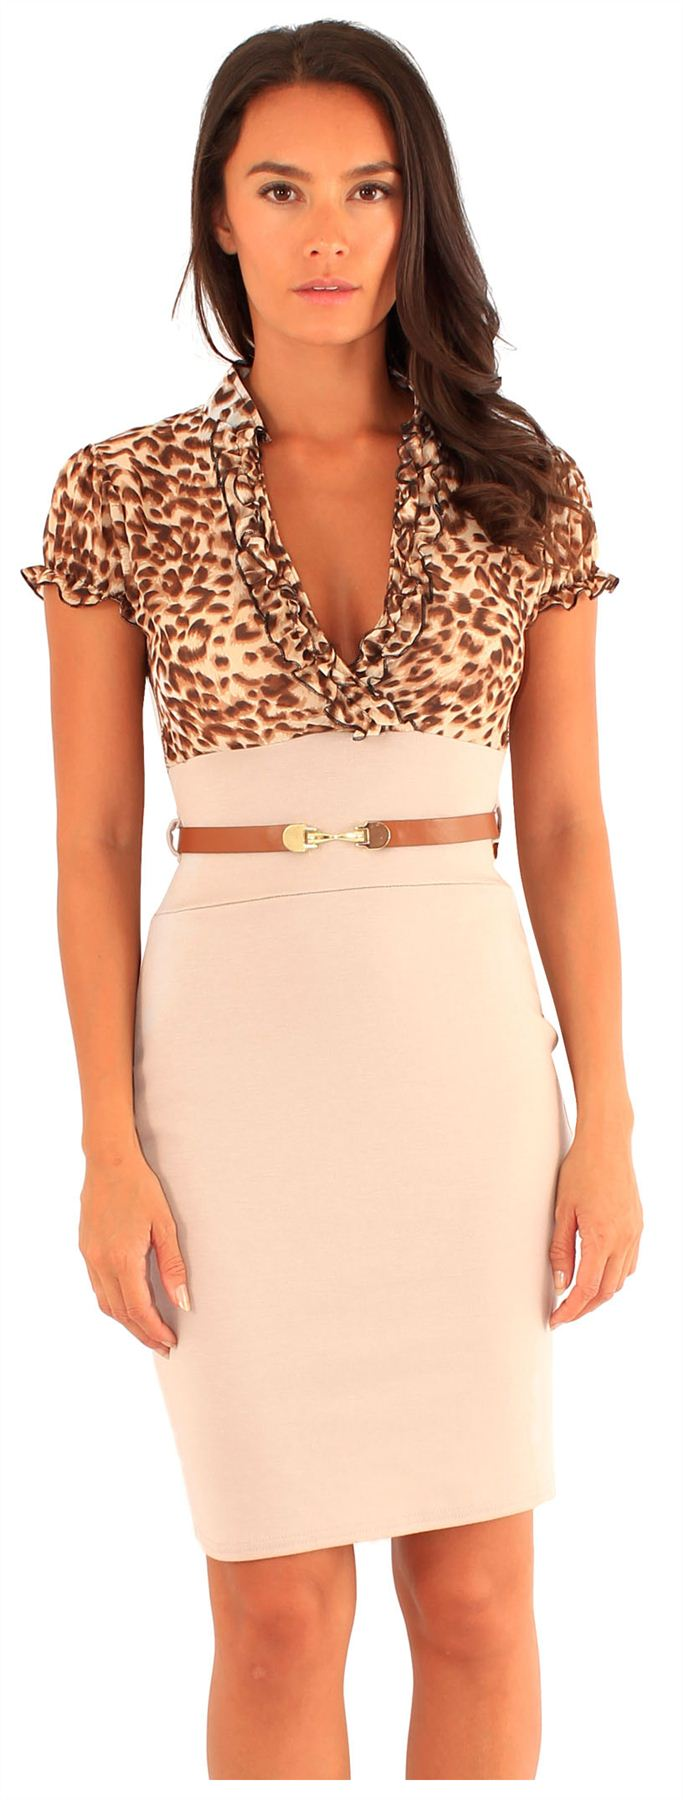 New-Womens-Animal-Print-Chiffon-Puff-Sleeve-2-In-1-Body-Con-Belted-Dress-8-14